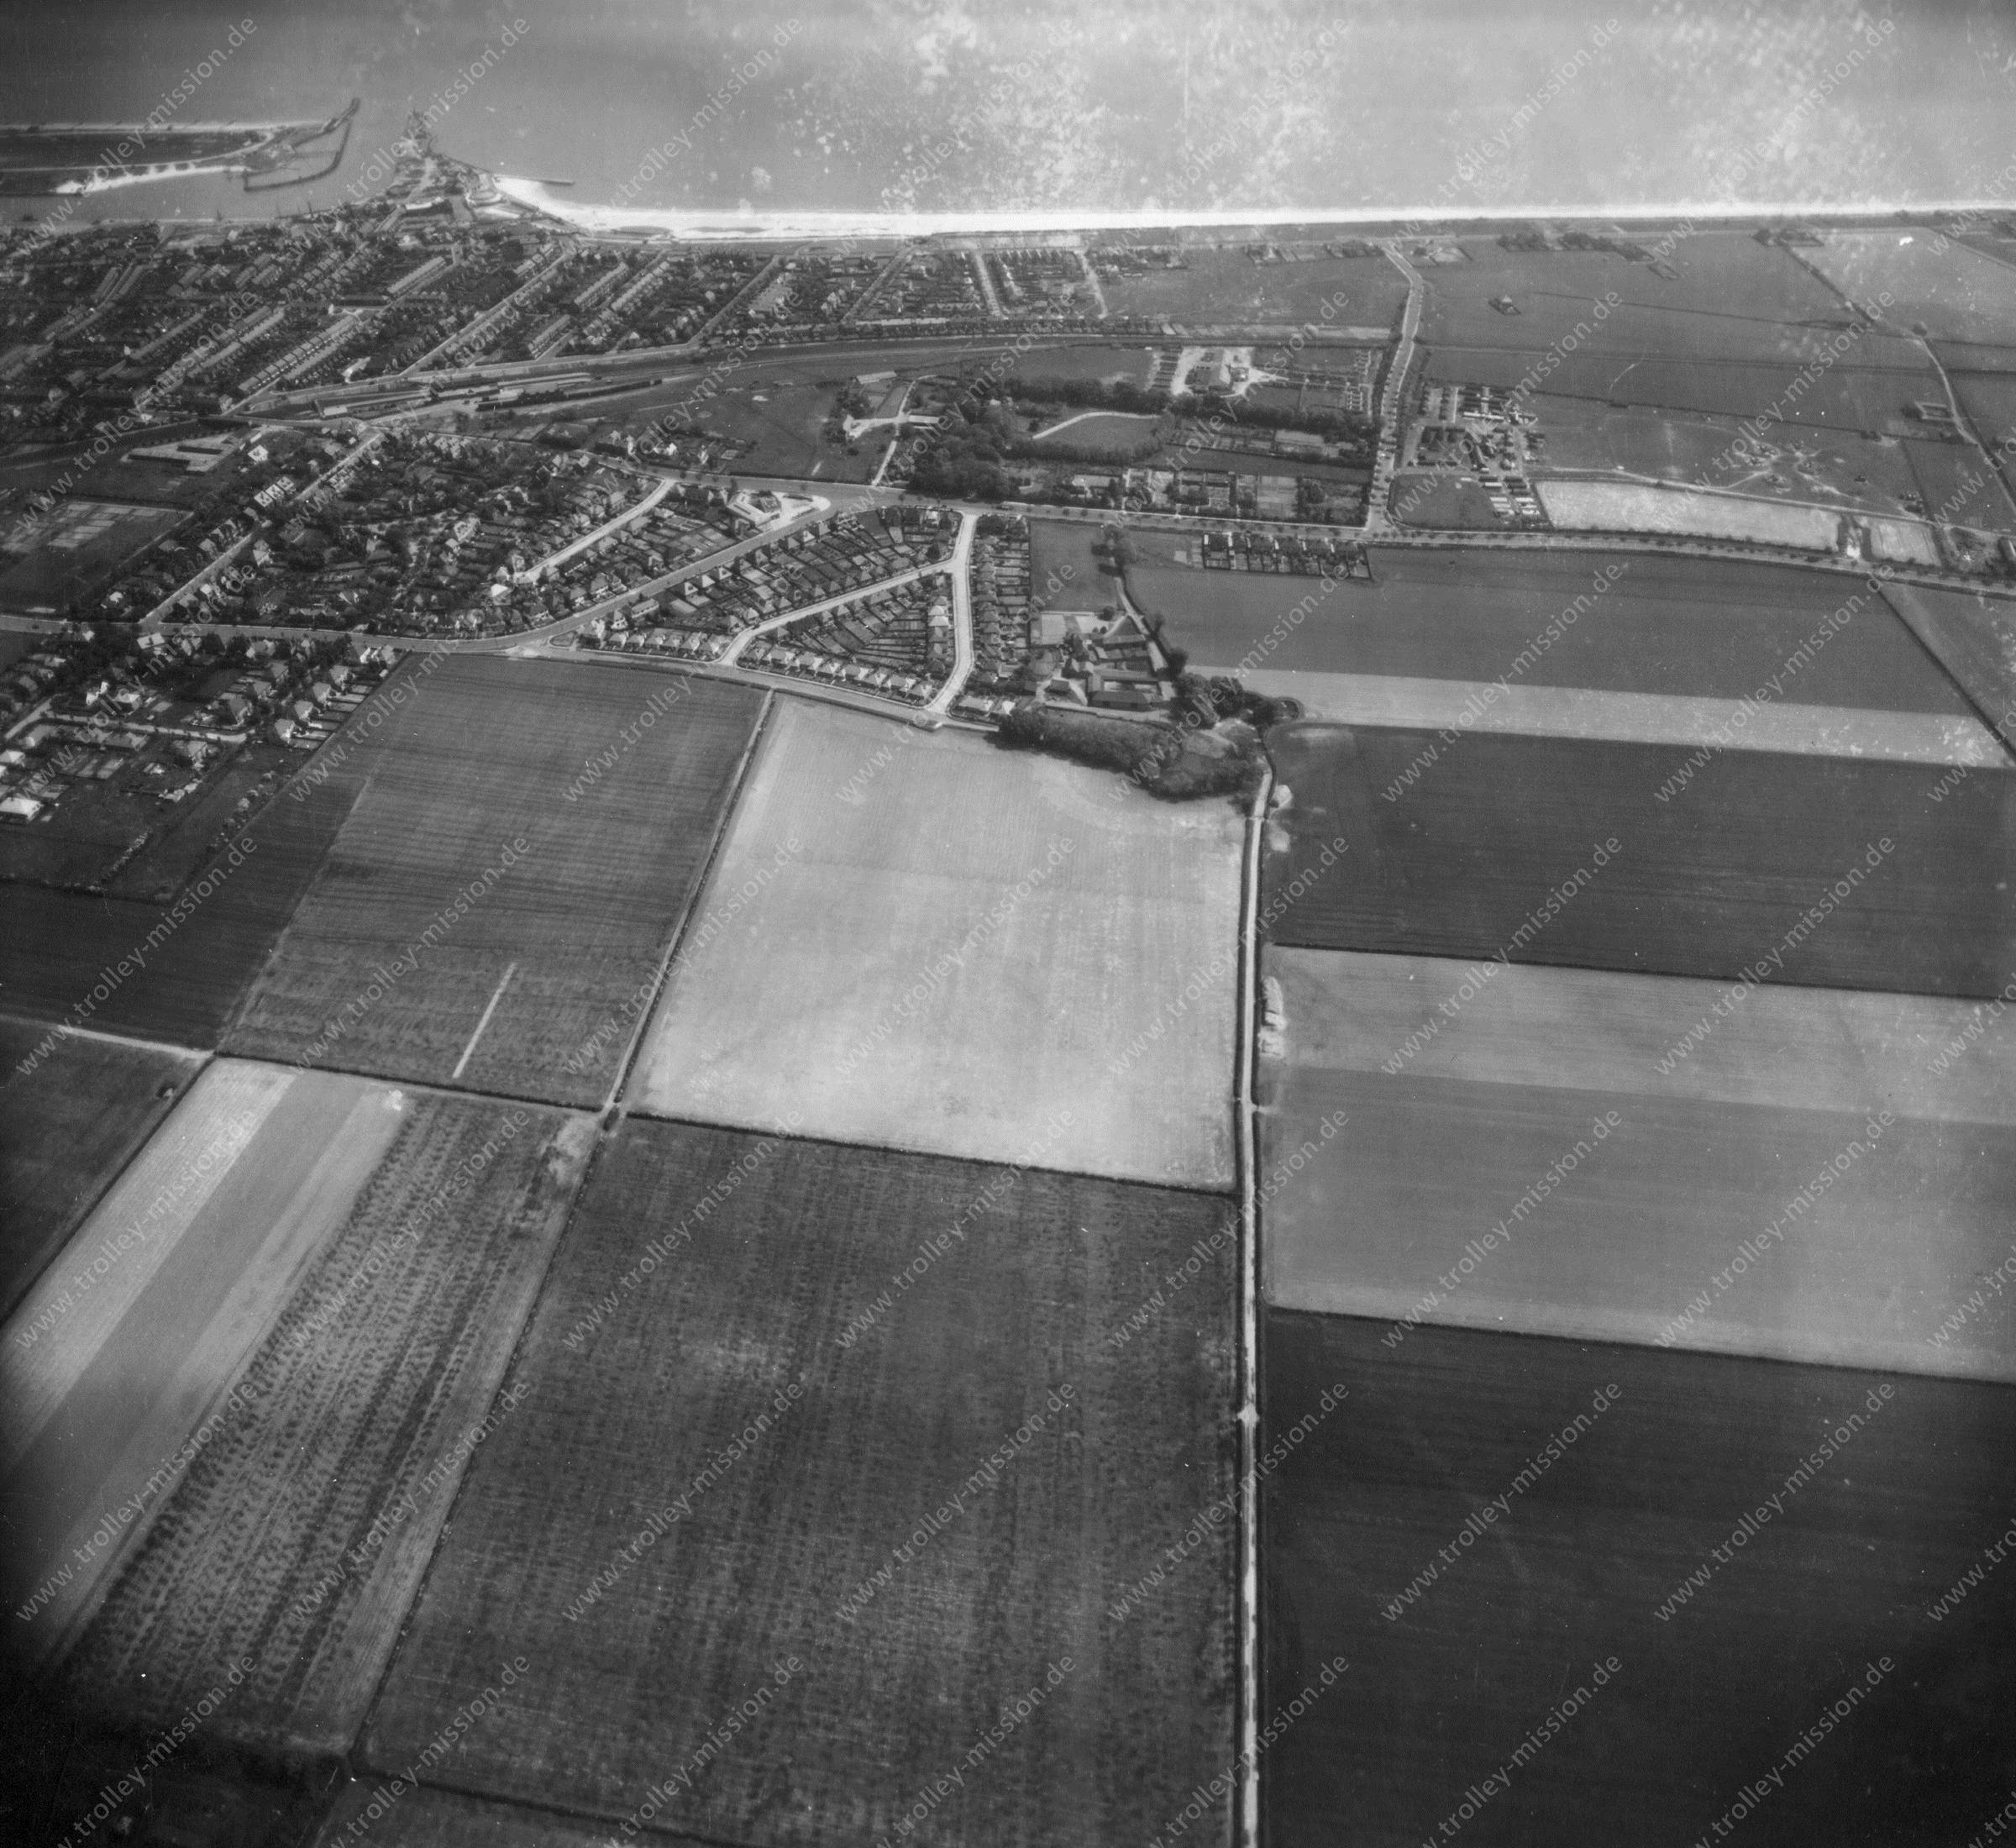 Great Yarmouth - Aerial Photograph May 1945 - Airborne Imagery 1/2